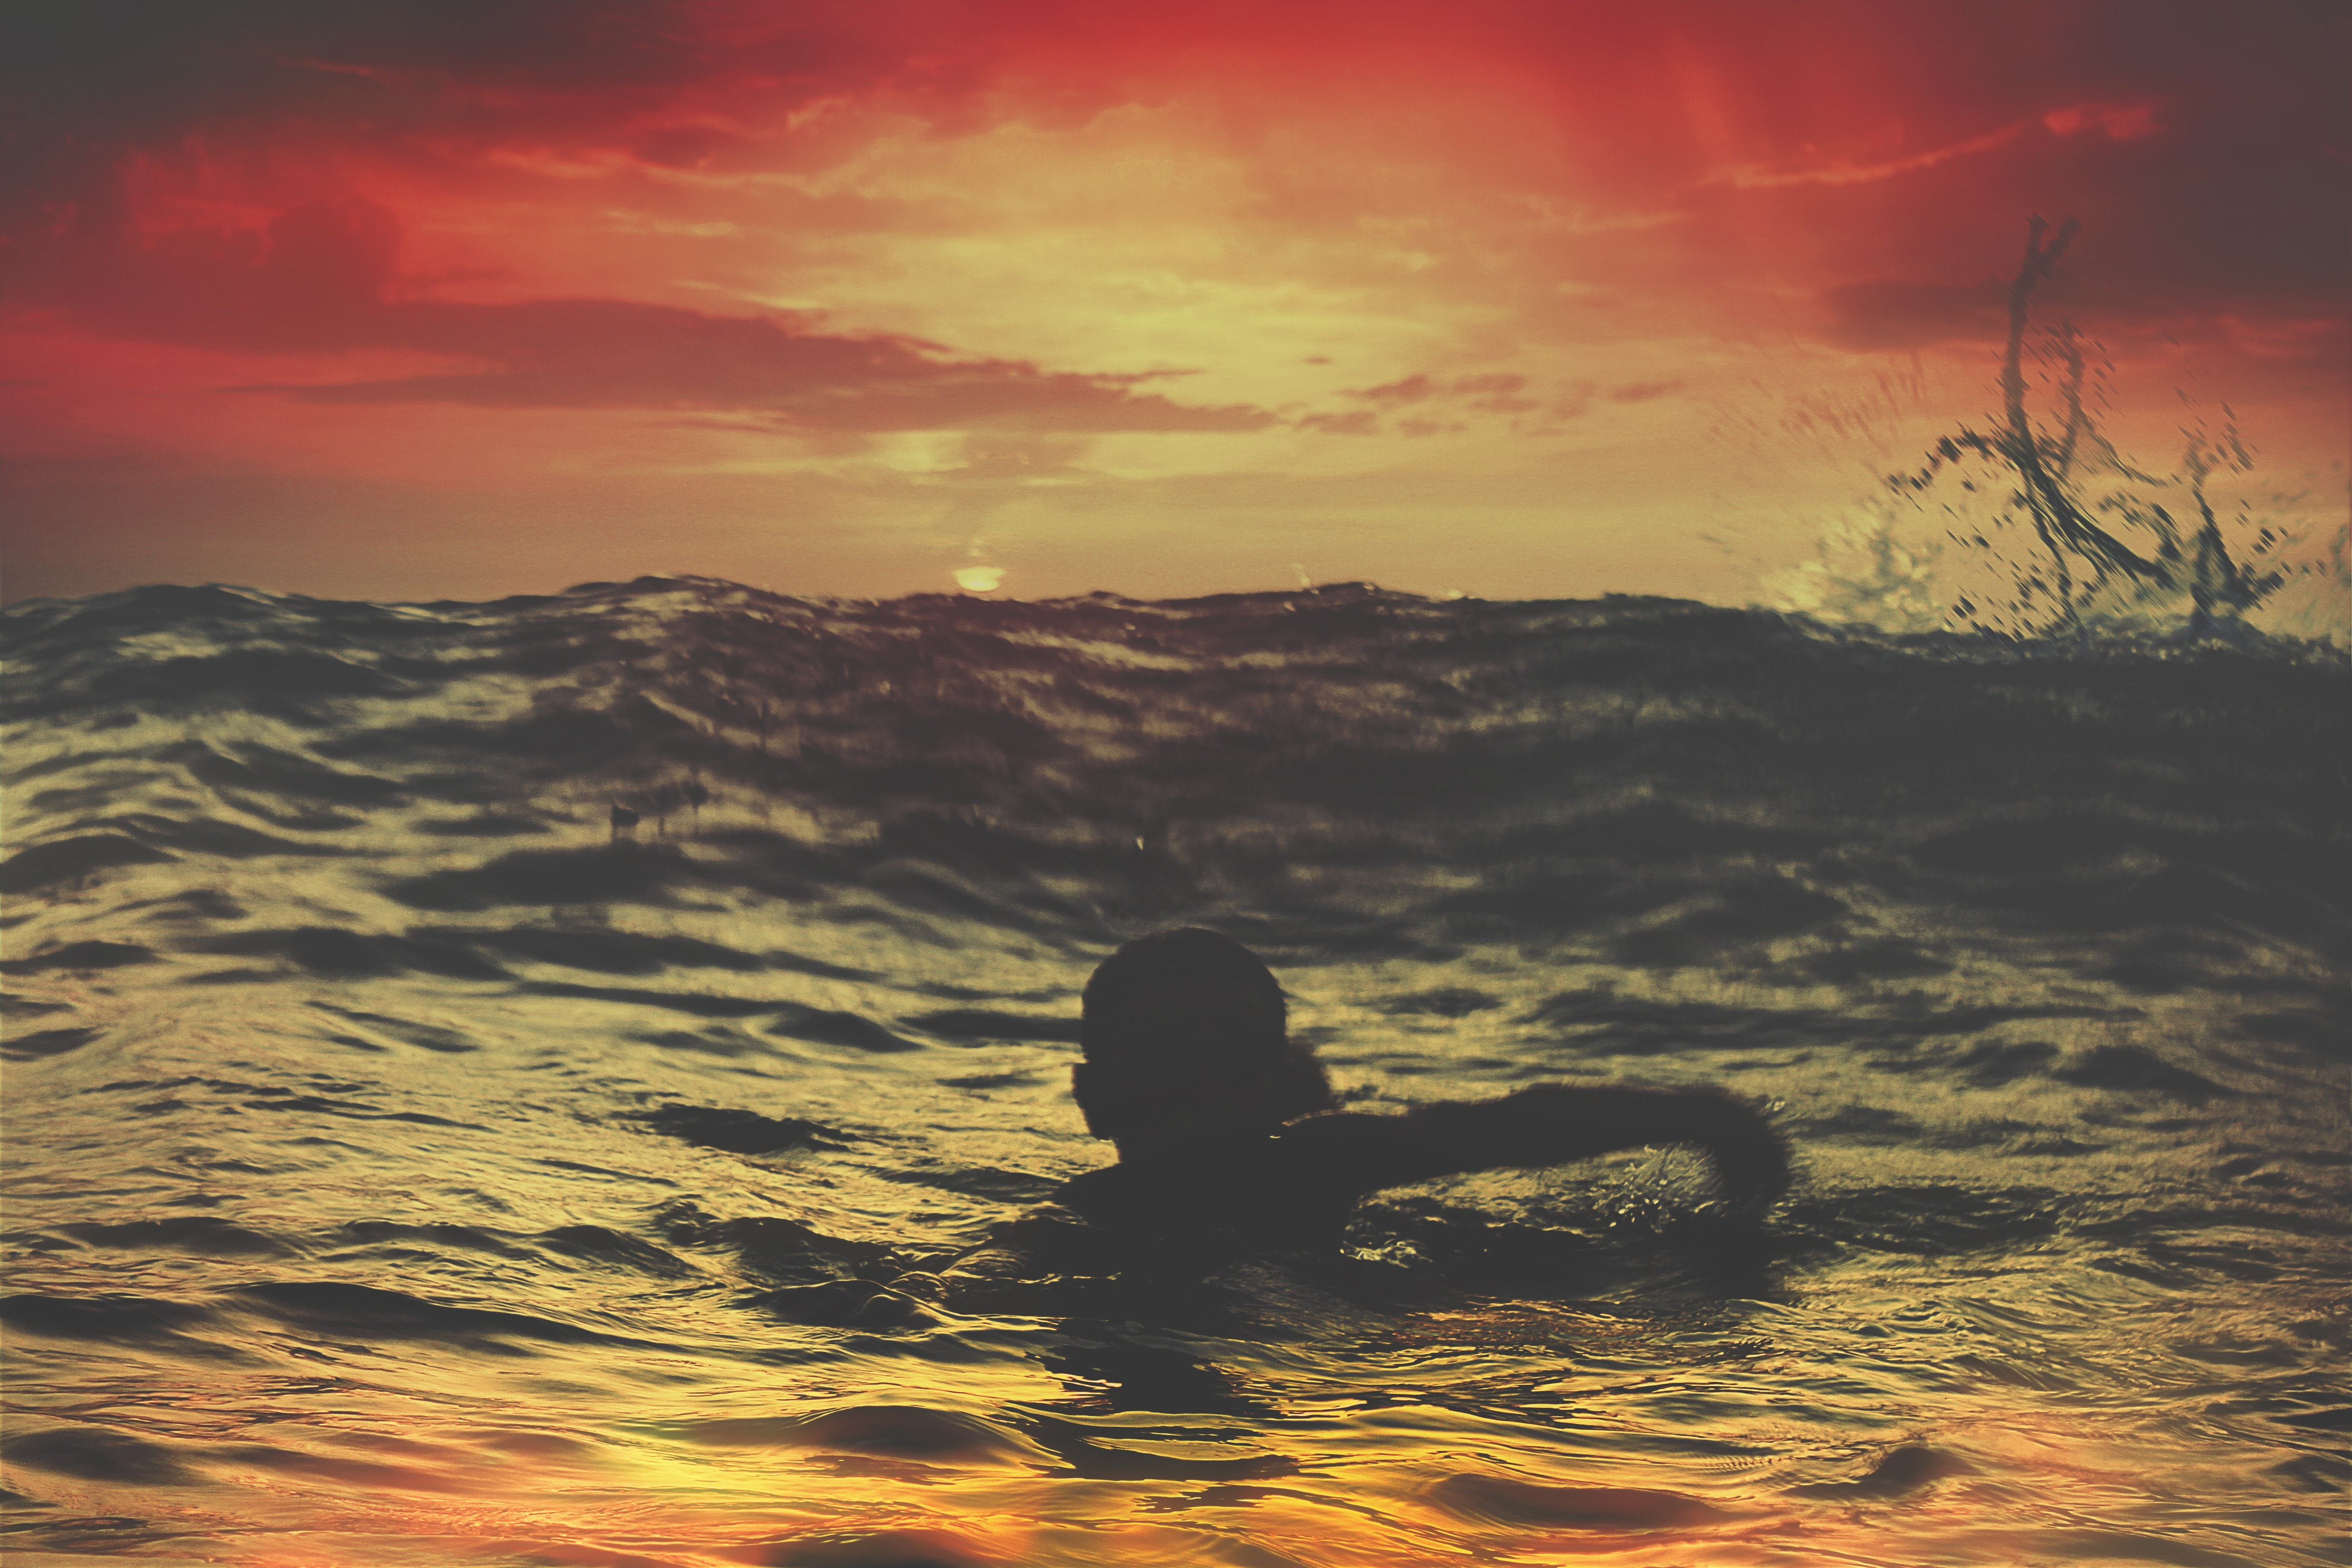 person swimming on body of water under red and orange sky